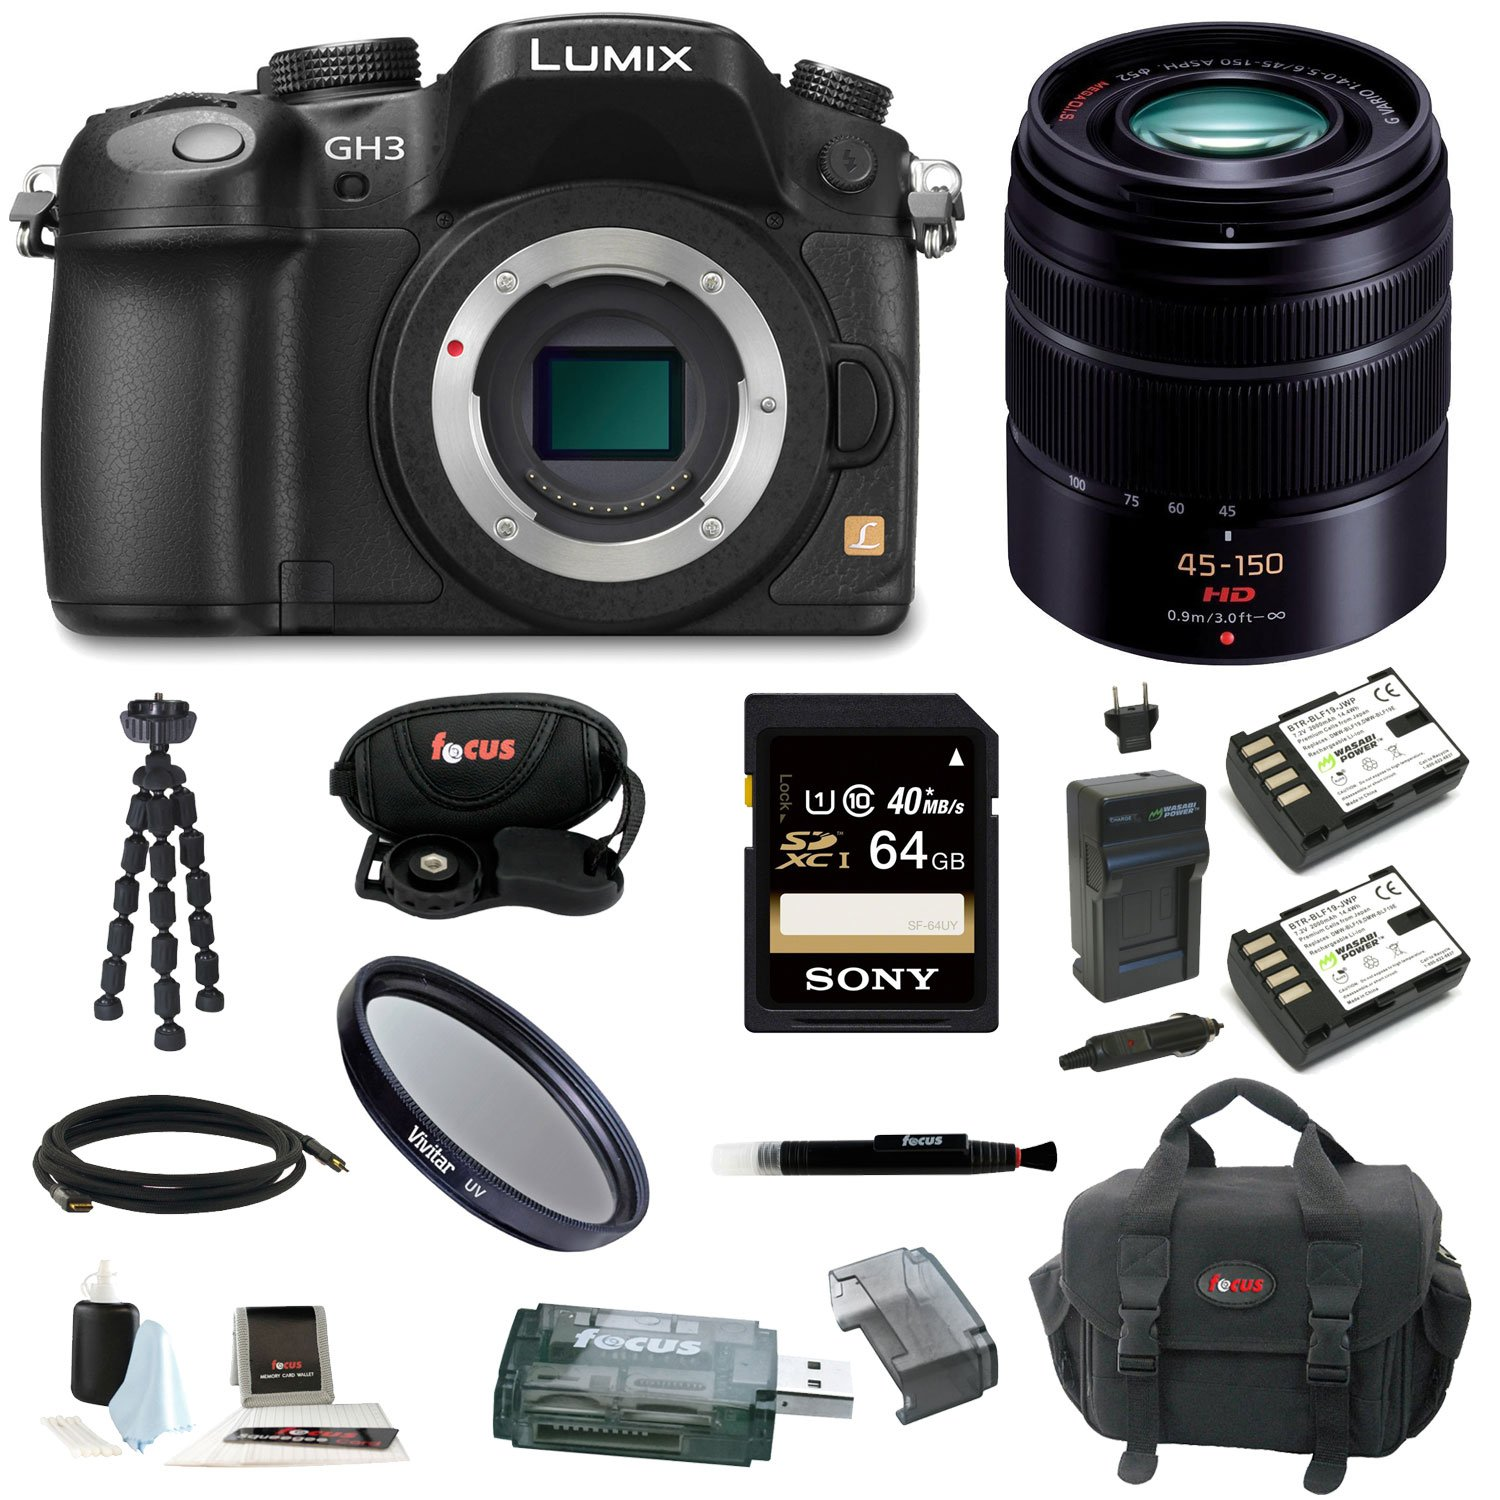 Panasonic Lumix DMC-GH3 GH3 DMCGH3 Mirrorless Micro Four Thirds Digital Camera (Black) + Panasonic H-FS45150K Lumix G Series Lens (Black)  ..